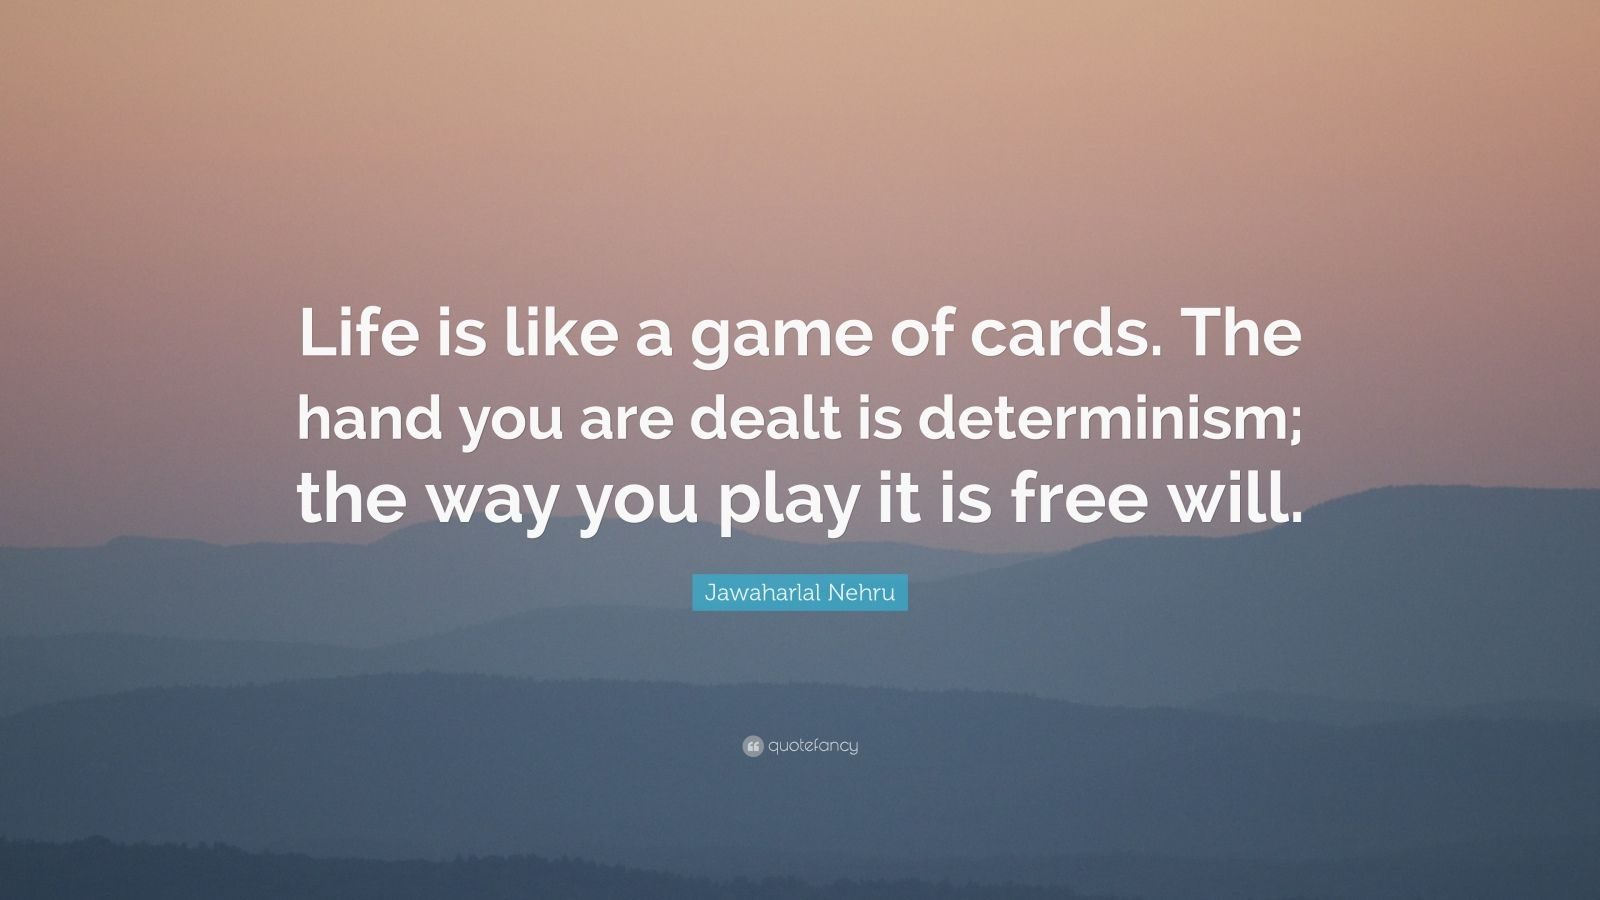 Life is like a game of cards essay